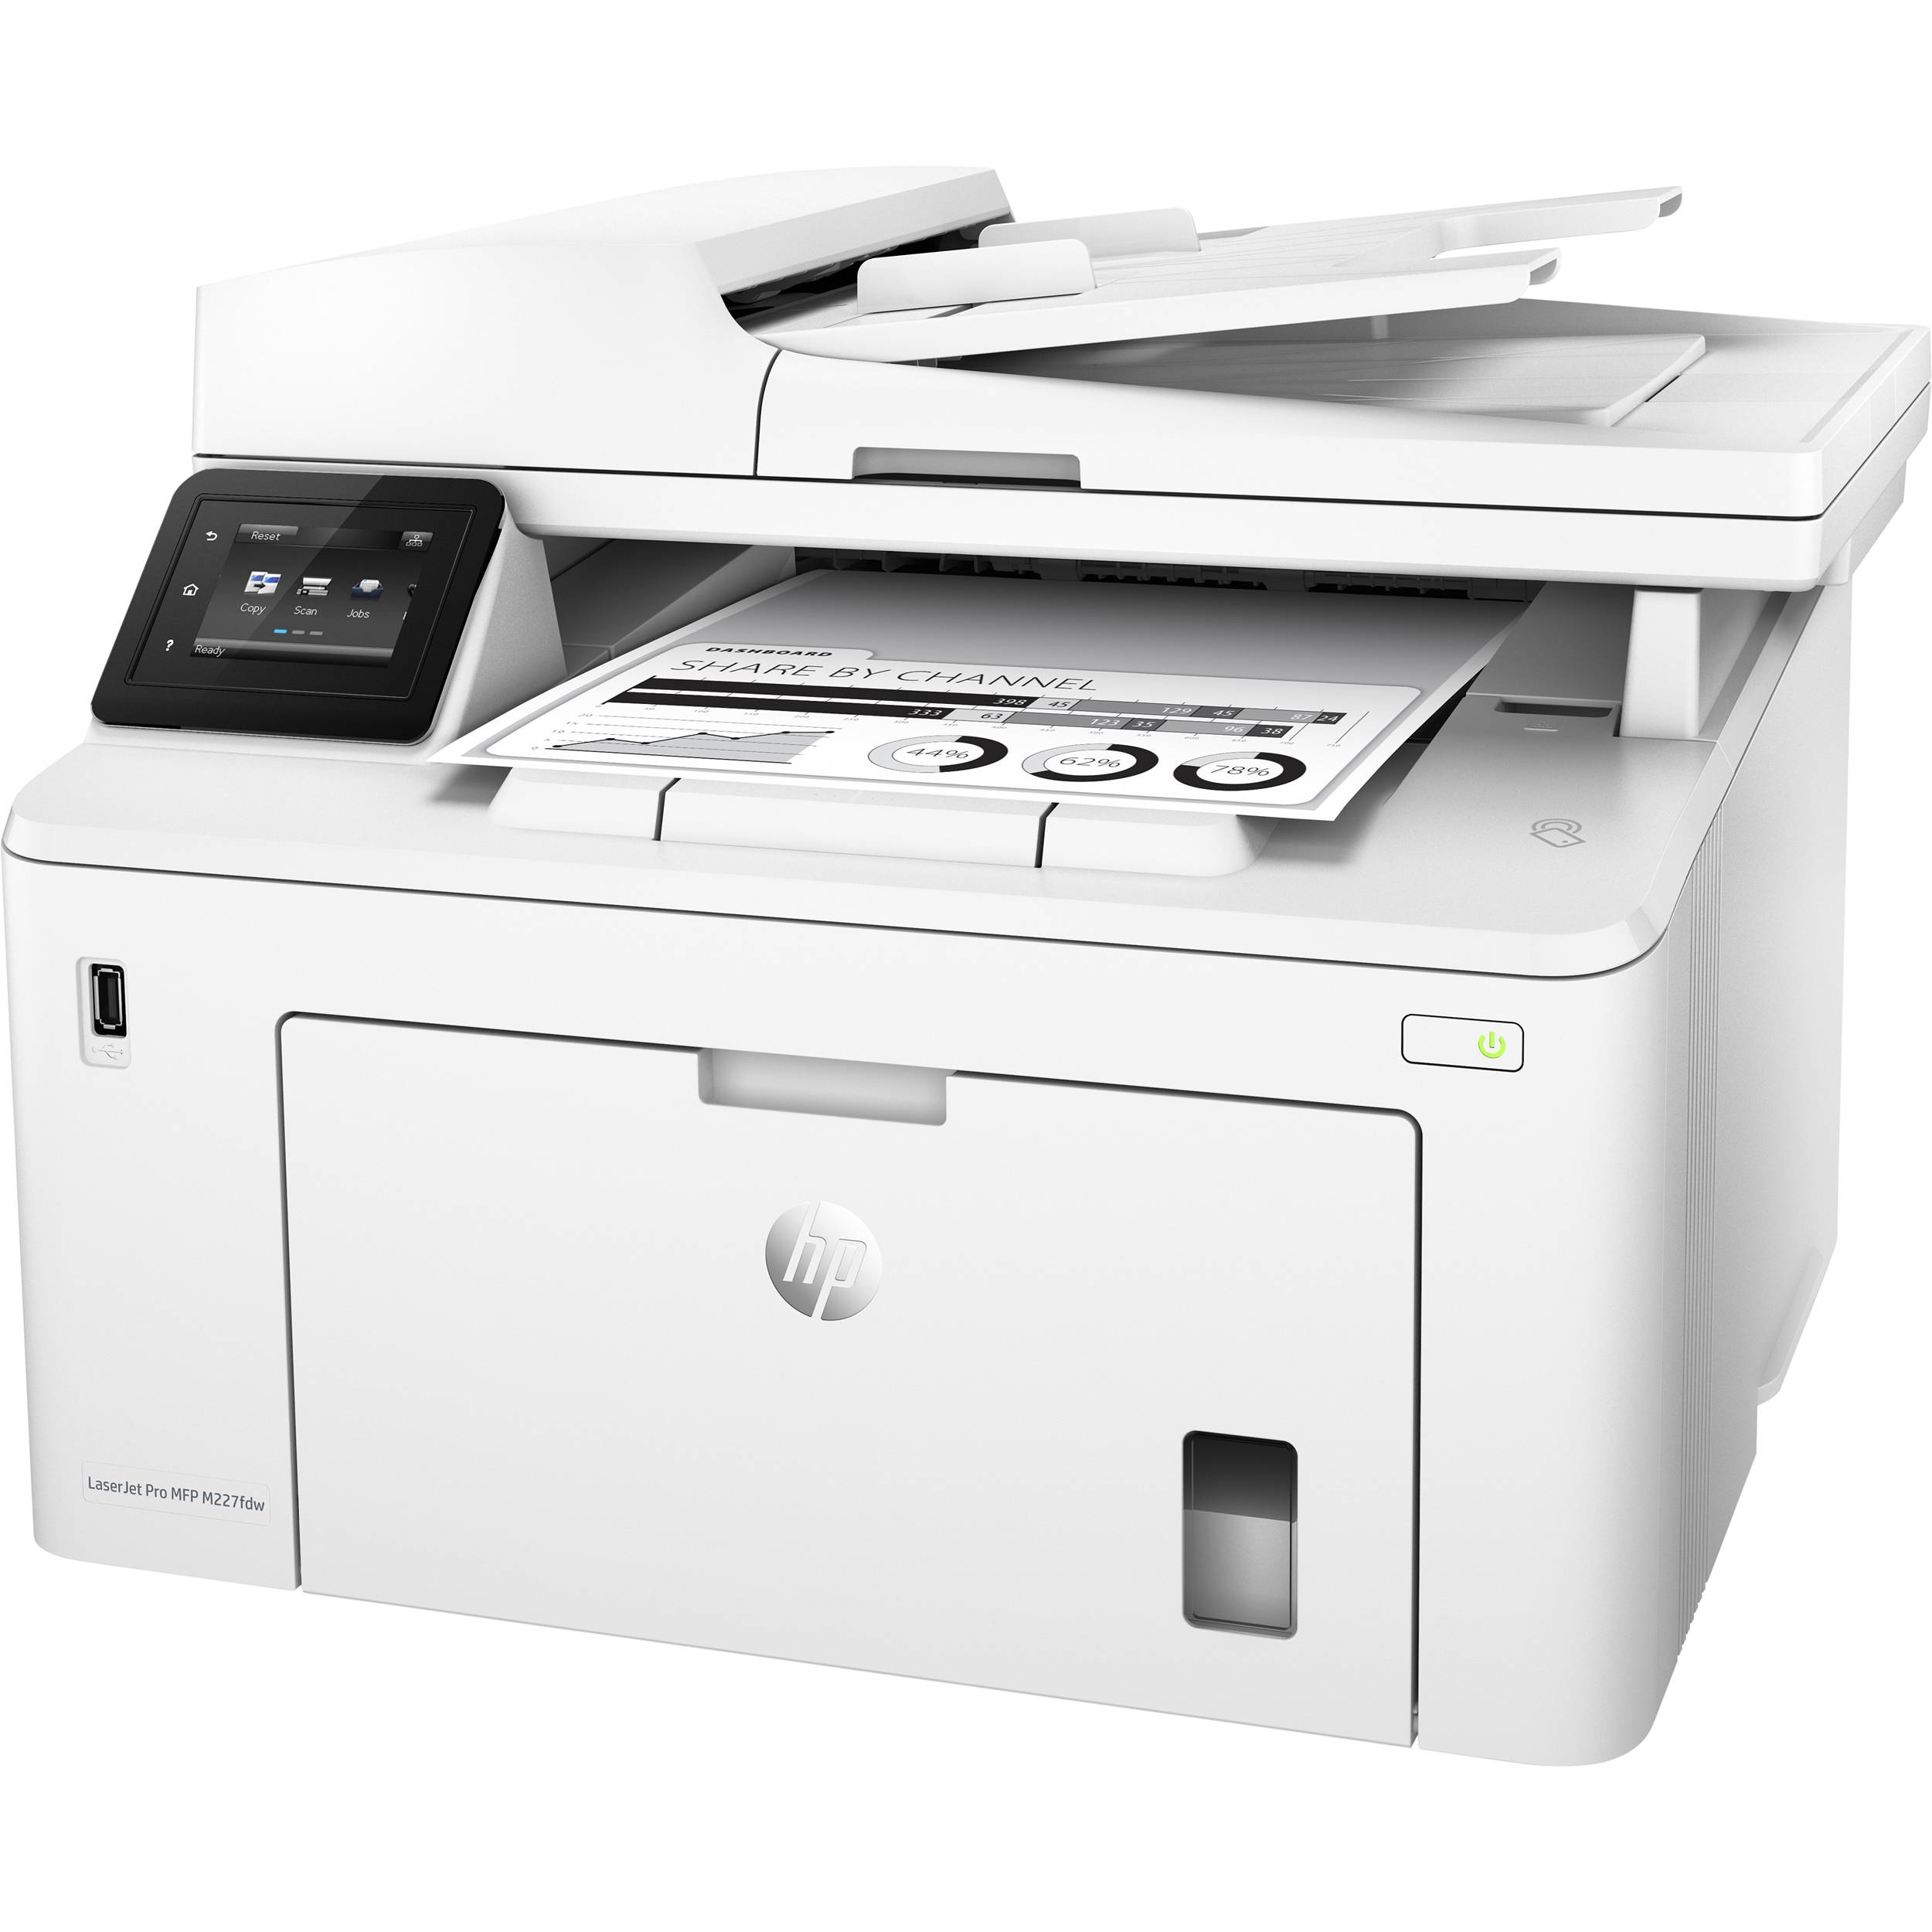 HP M227fdw Replacement for HP M225dw | B&H Photo Video